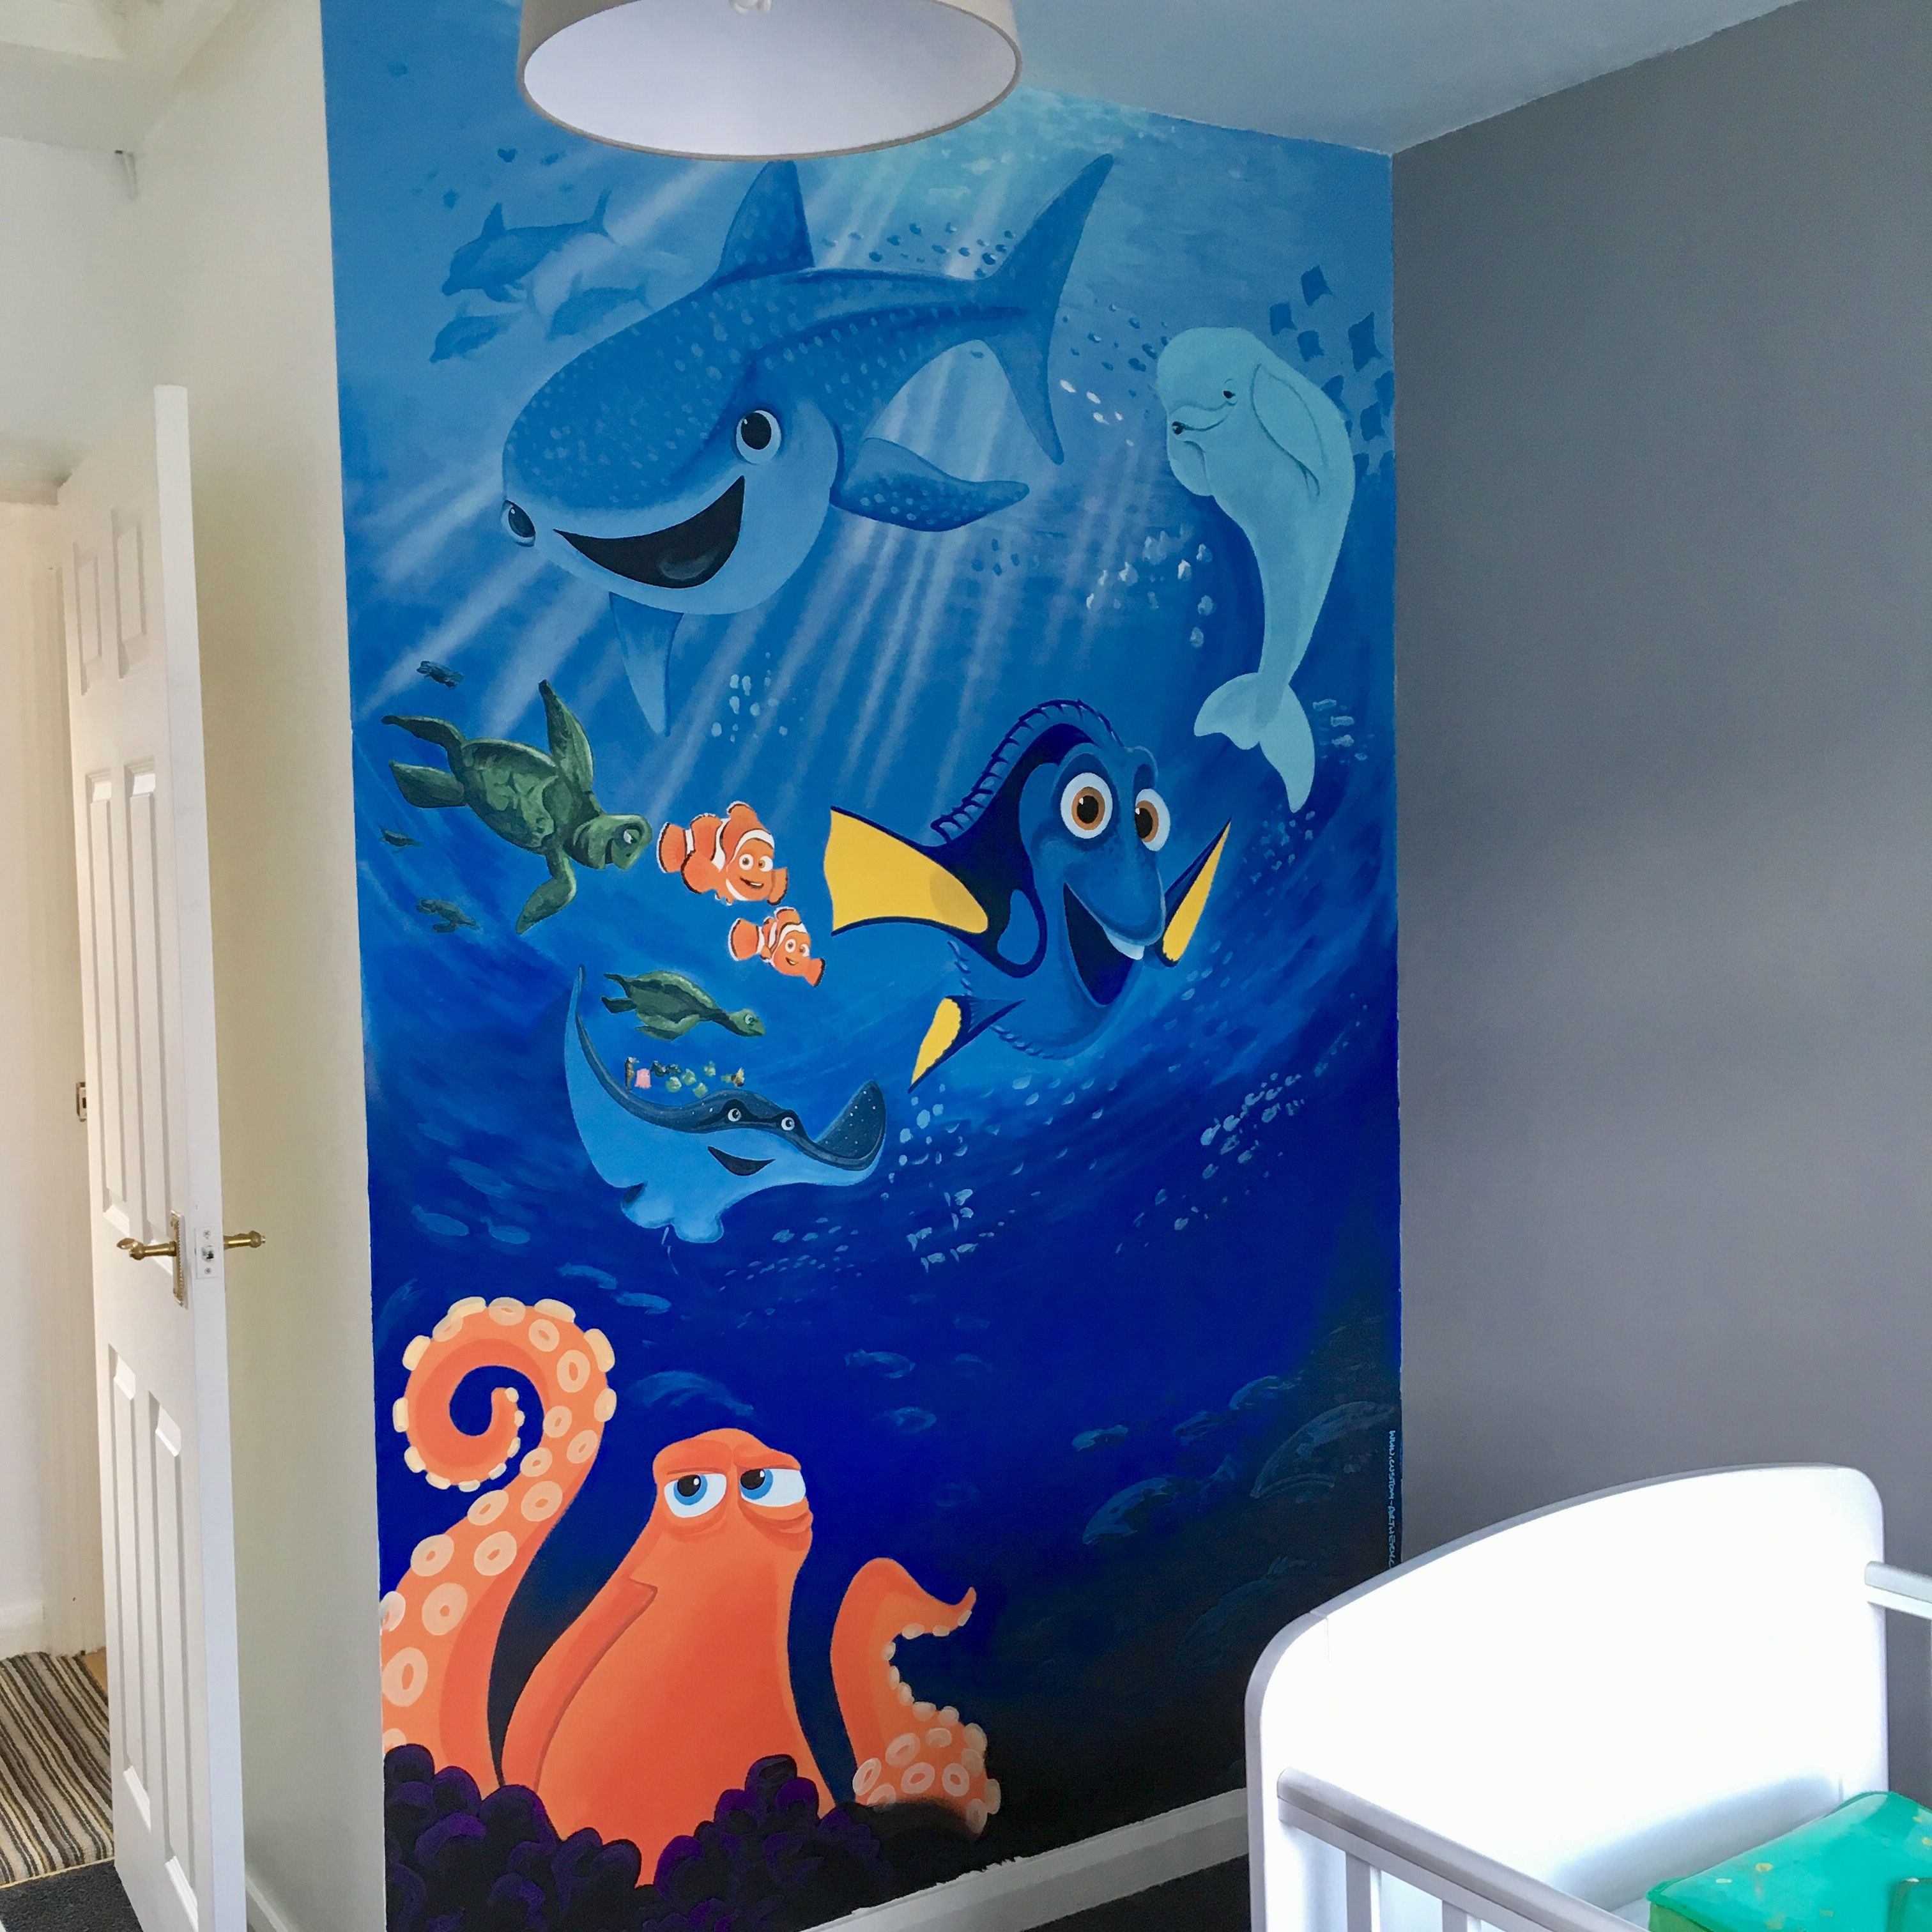 Finding dory painted wall mural kids wall murals pinterest finding dory painted wall mural amipublicfo Image collections